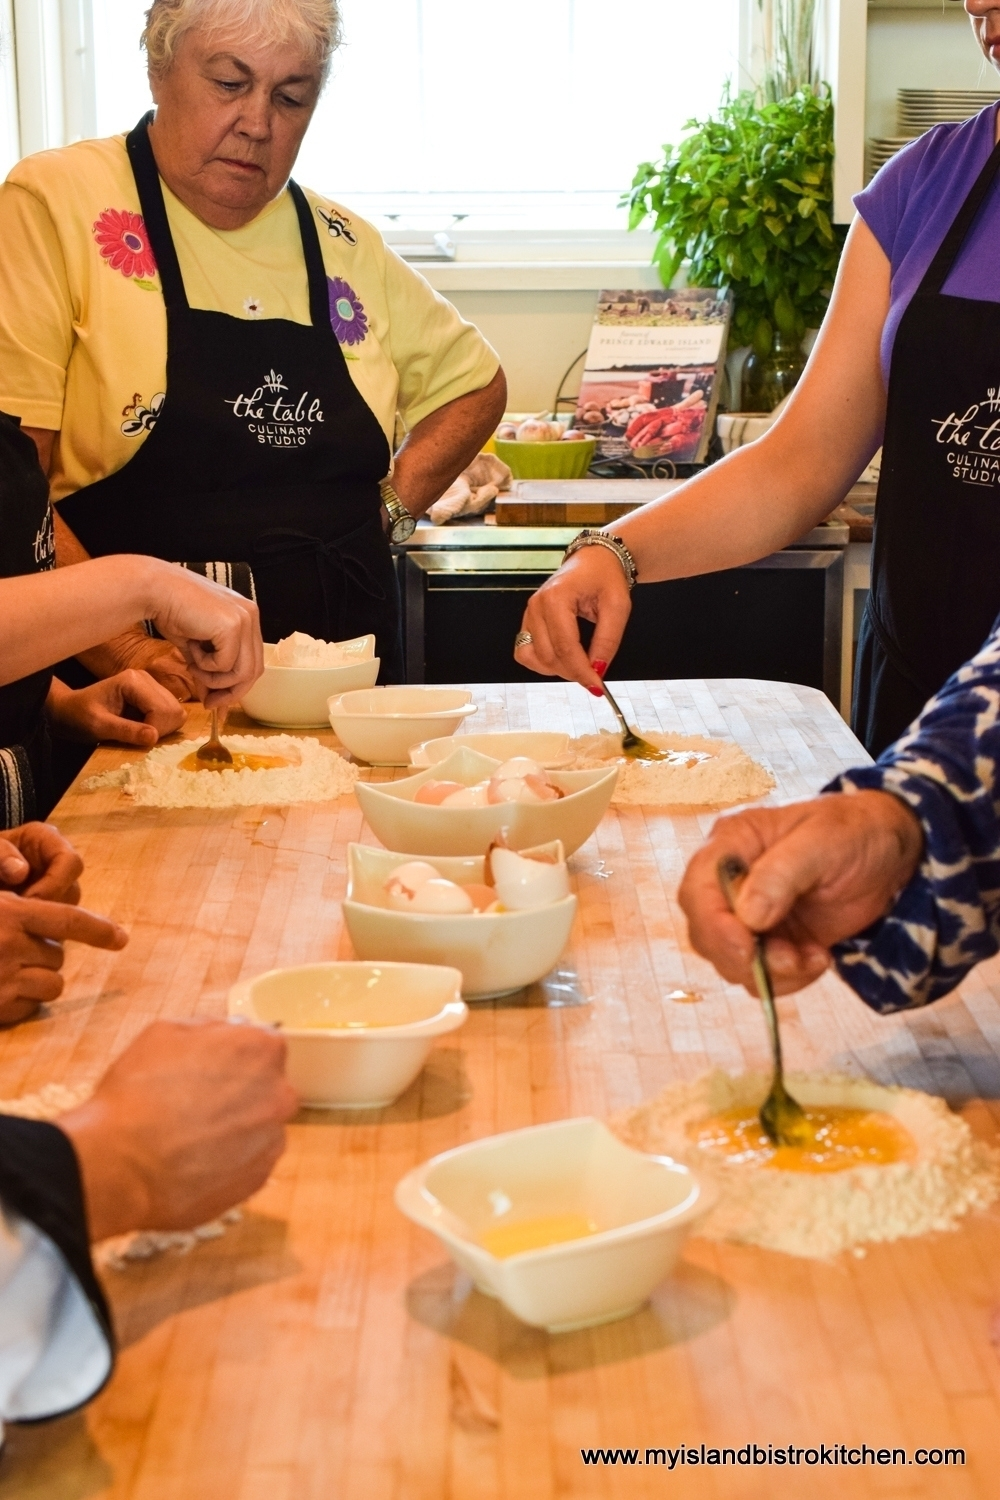 Making Homemade Pasta at The Table Culinary Studio in New London, PEI